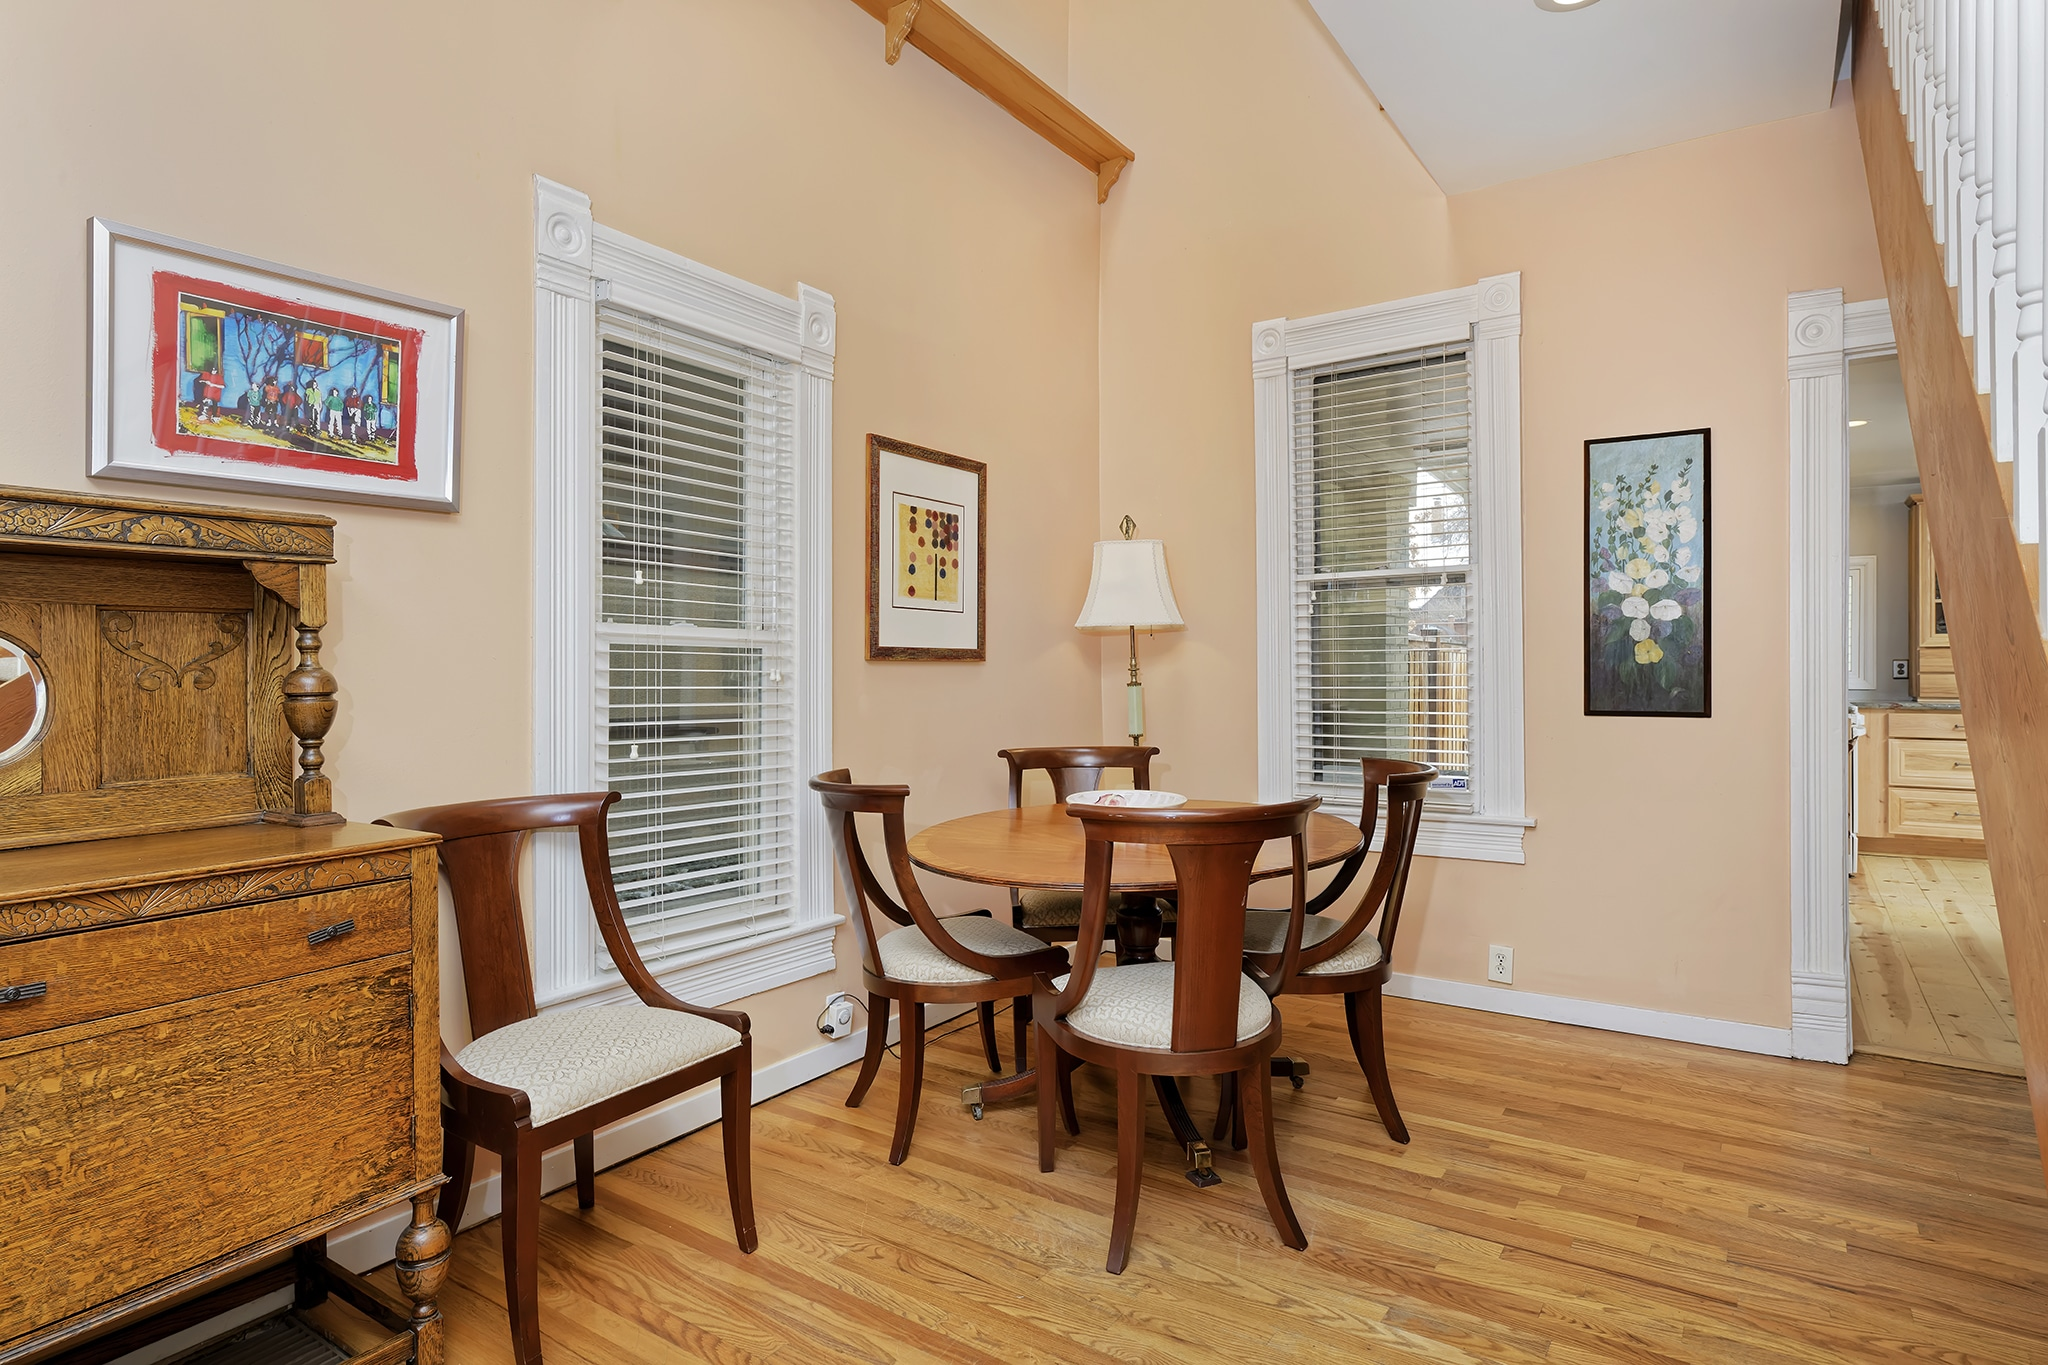 Dining room area with open vaulted ceiling, natural light, oak floors